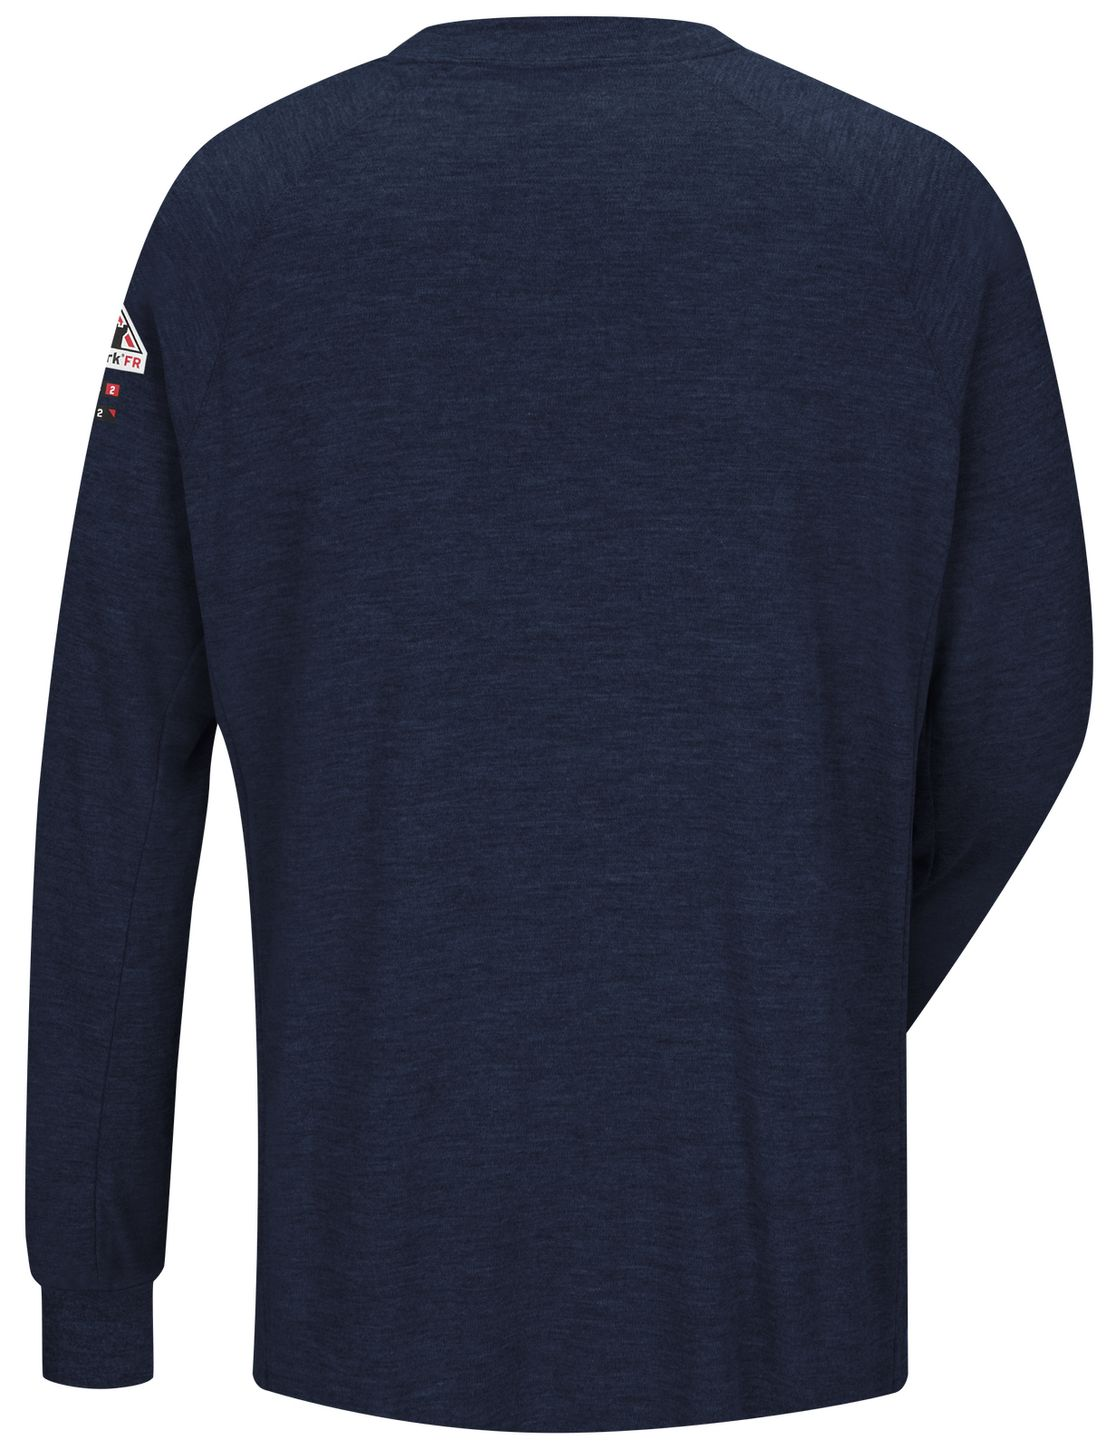 bulwark-fr-long-sleeve-smt2-performance-t-shirt-cooltouch-2-navy-back.jpg